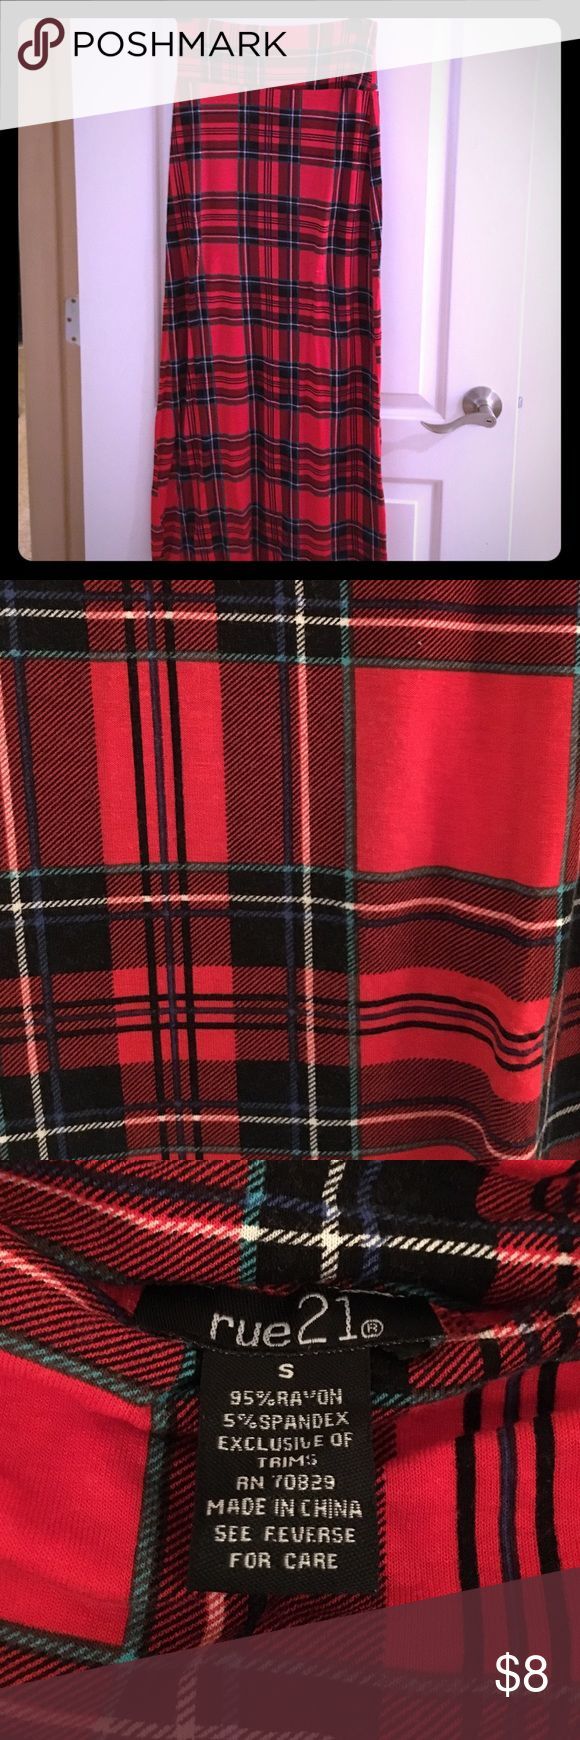 Rue 21 Red Plaid Maxi Skirt sz Small This is a cute maxi skirt from Rue 21. It is red plaid that has a little bit of blue, white, and black. It is in great condition. Looks new! Let me know if you are interested! Rue 21 Skirts Maxi